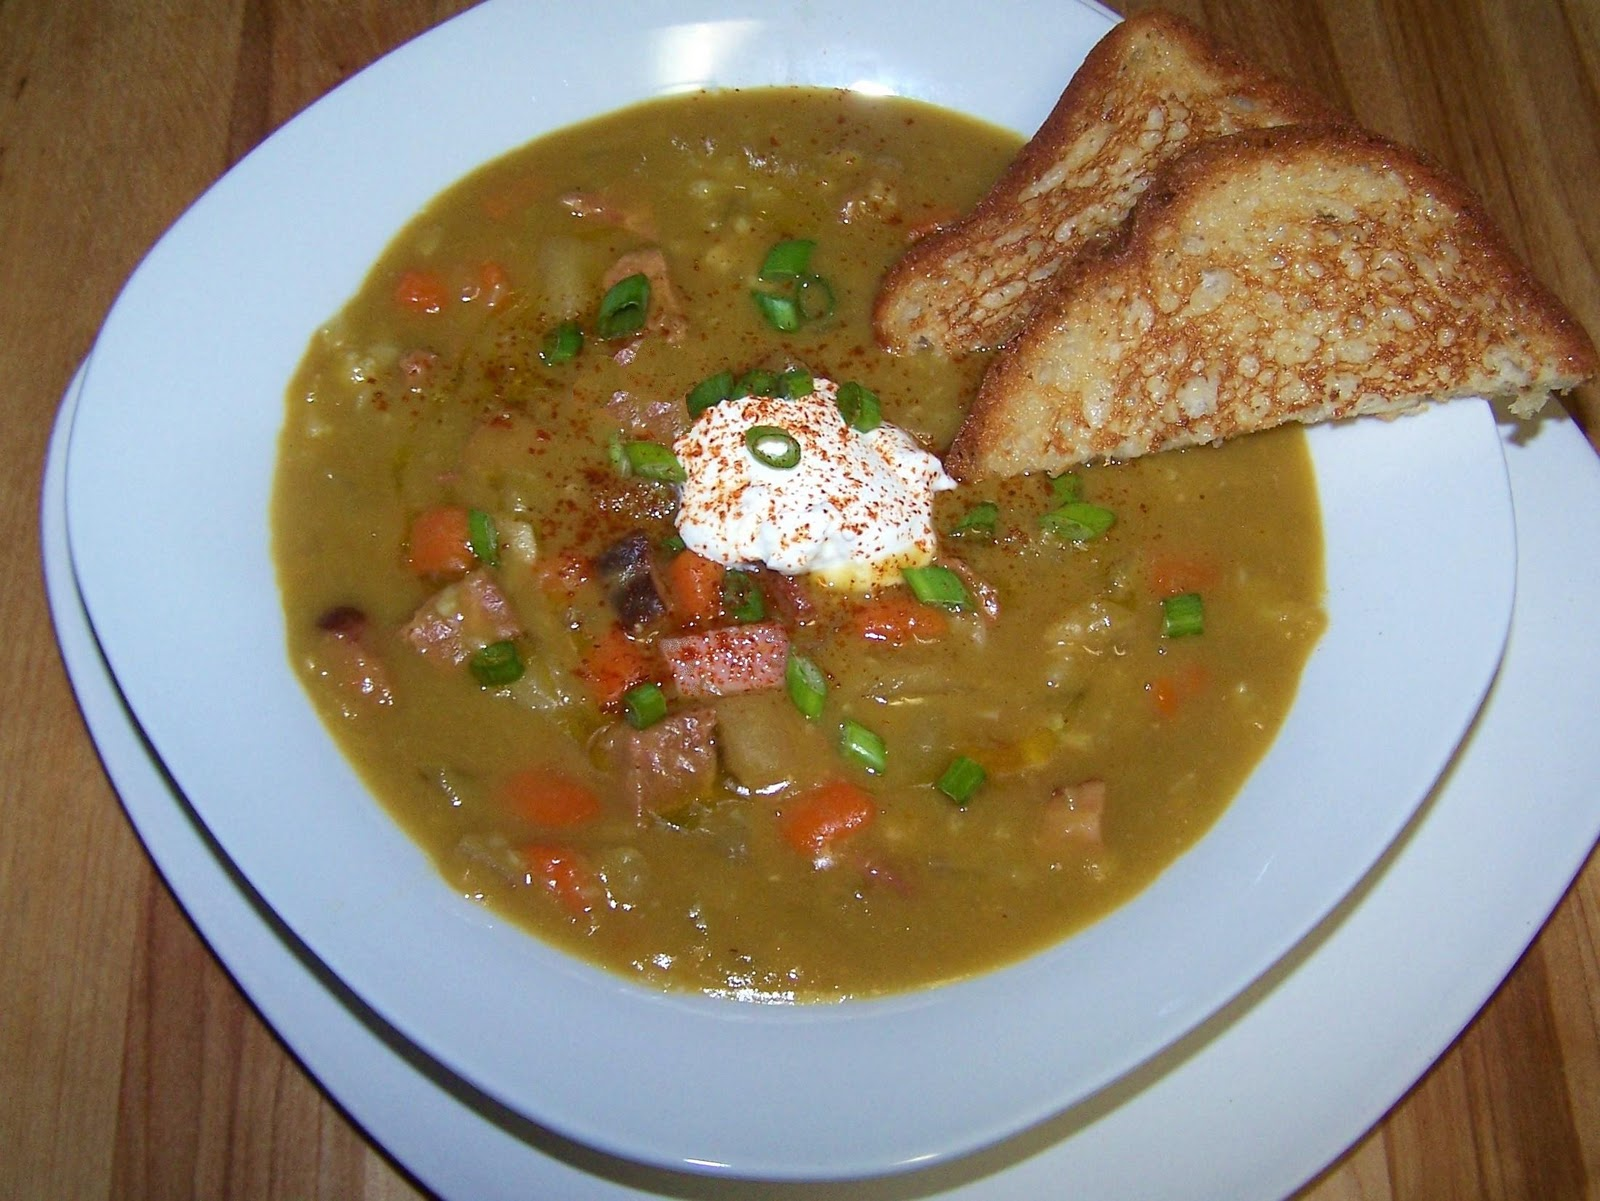 EZ Gluten Free: Slow Cooker Split Pea and Ham Soup